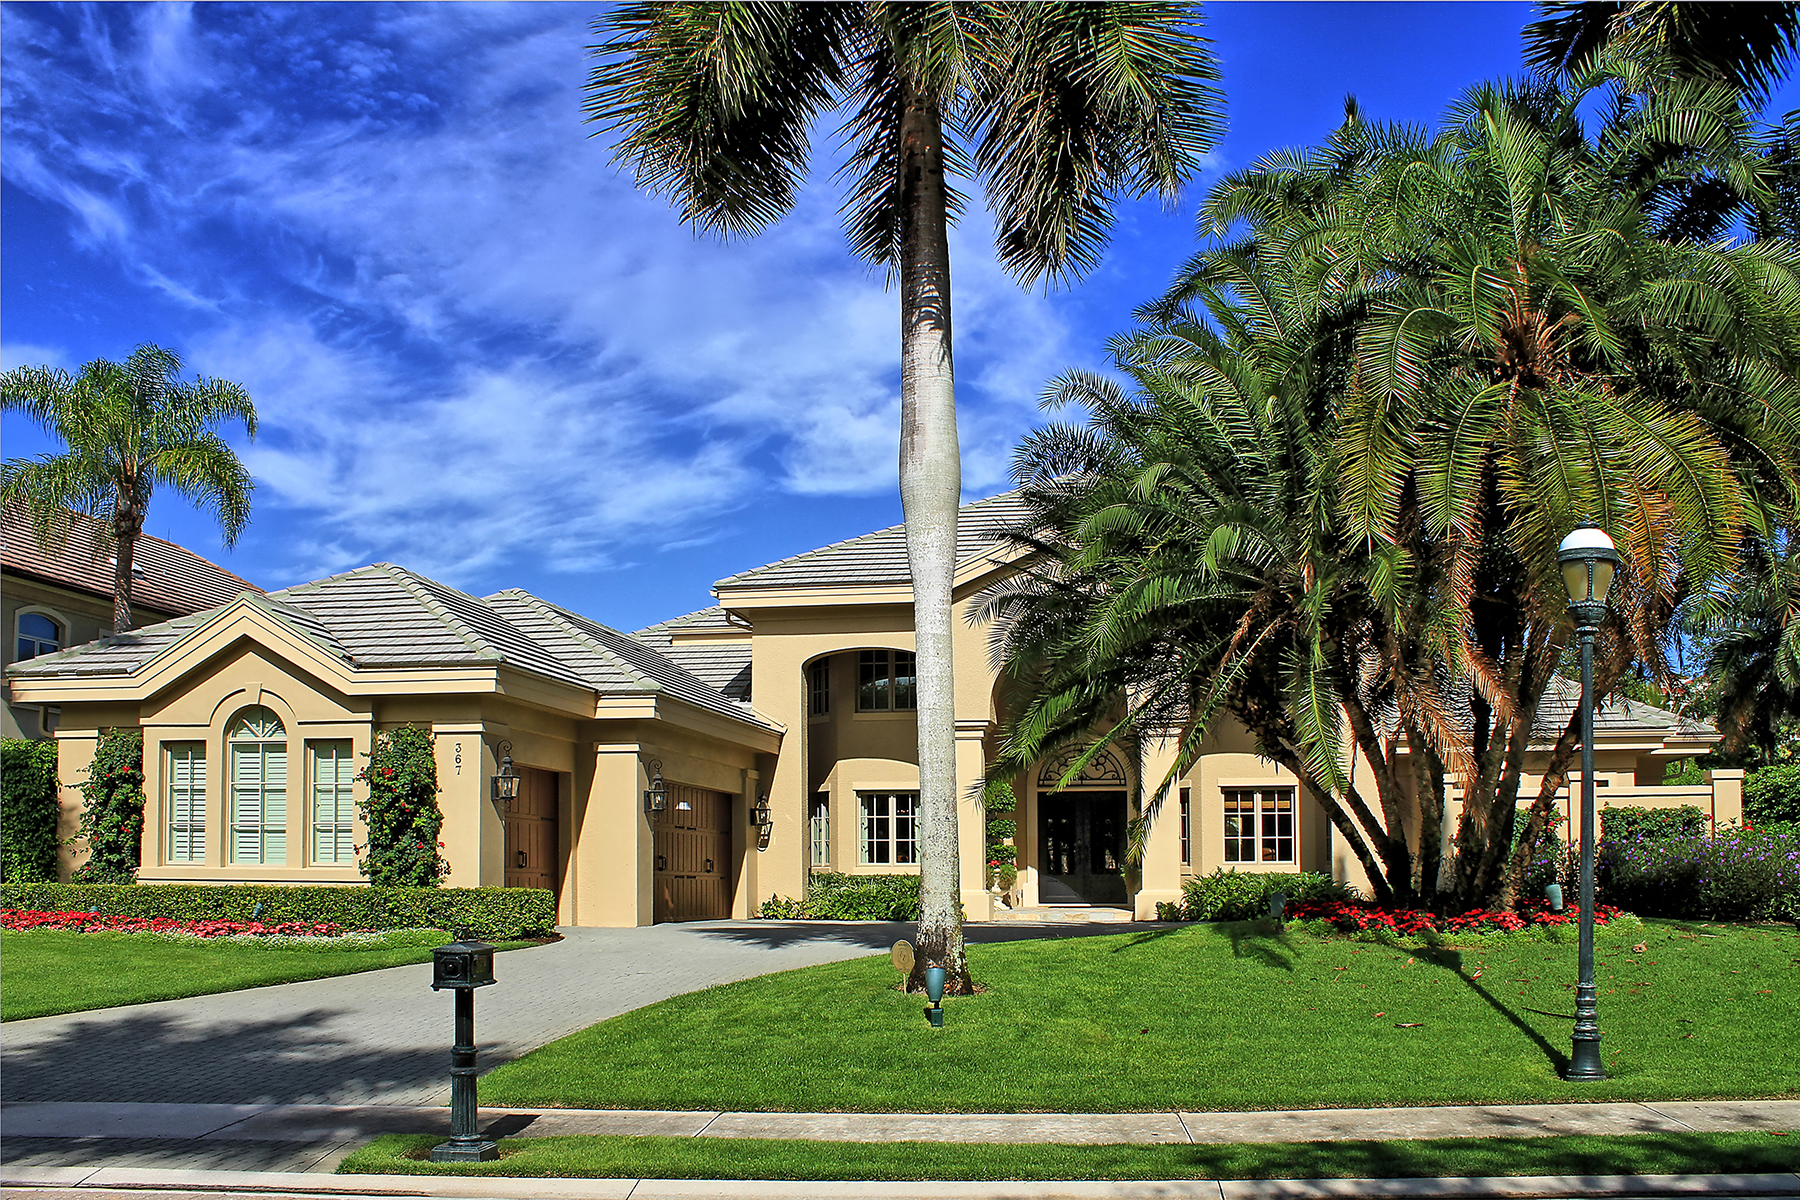 Villa per Vendita alle ore PELICAN BAY - BAY COLONY SHORES 367 Colony Dr Naples, Florida 34117 Stati Uniti